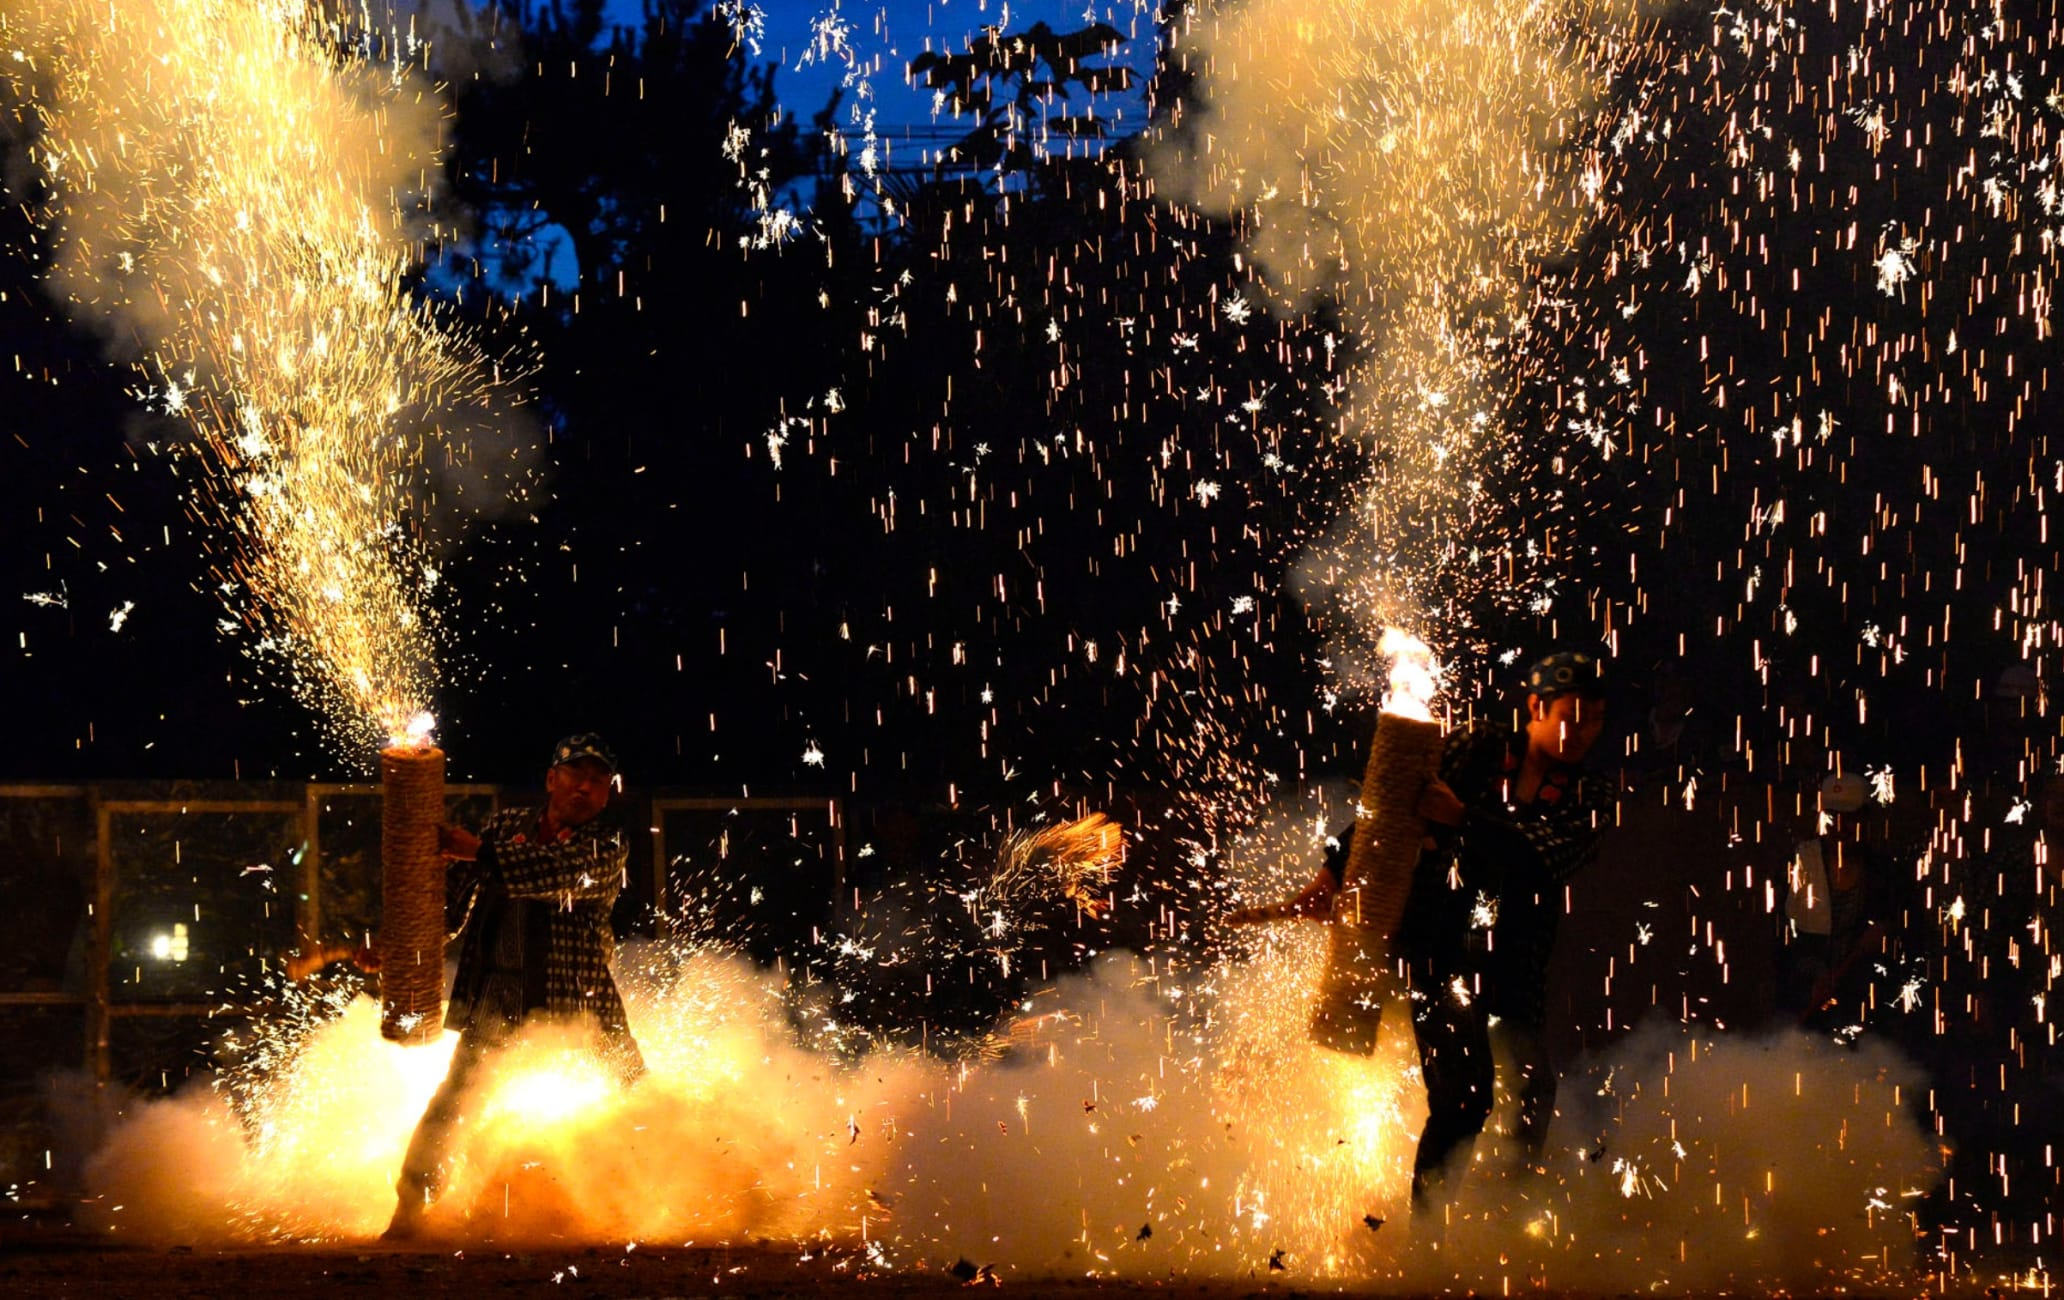 Toyohashi Gion hand pipe fireworks festival